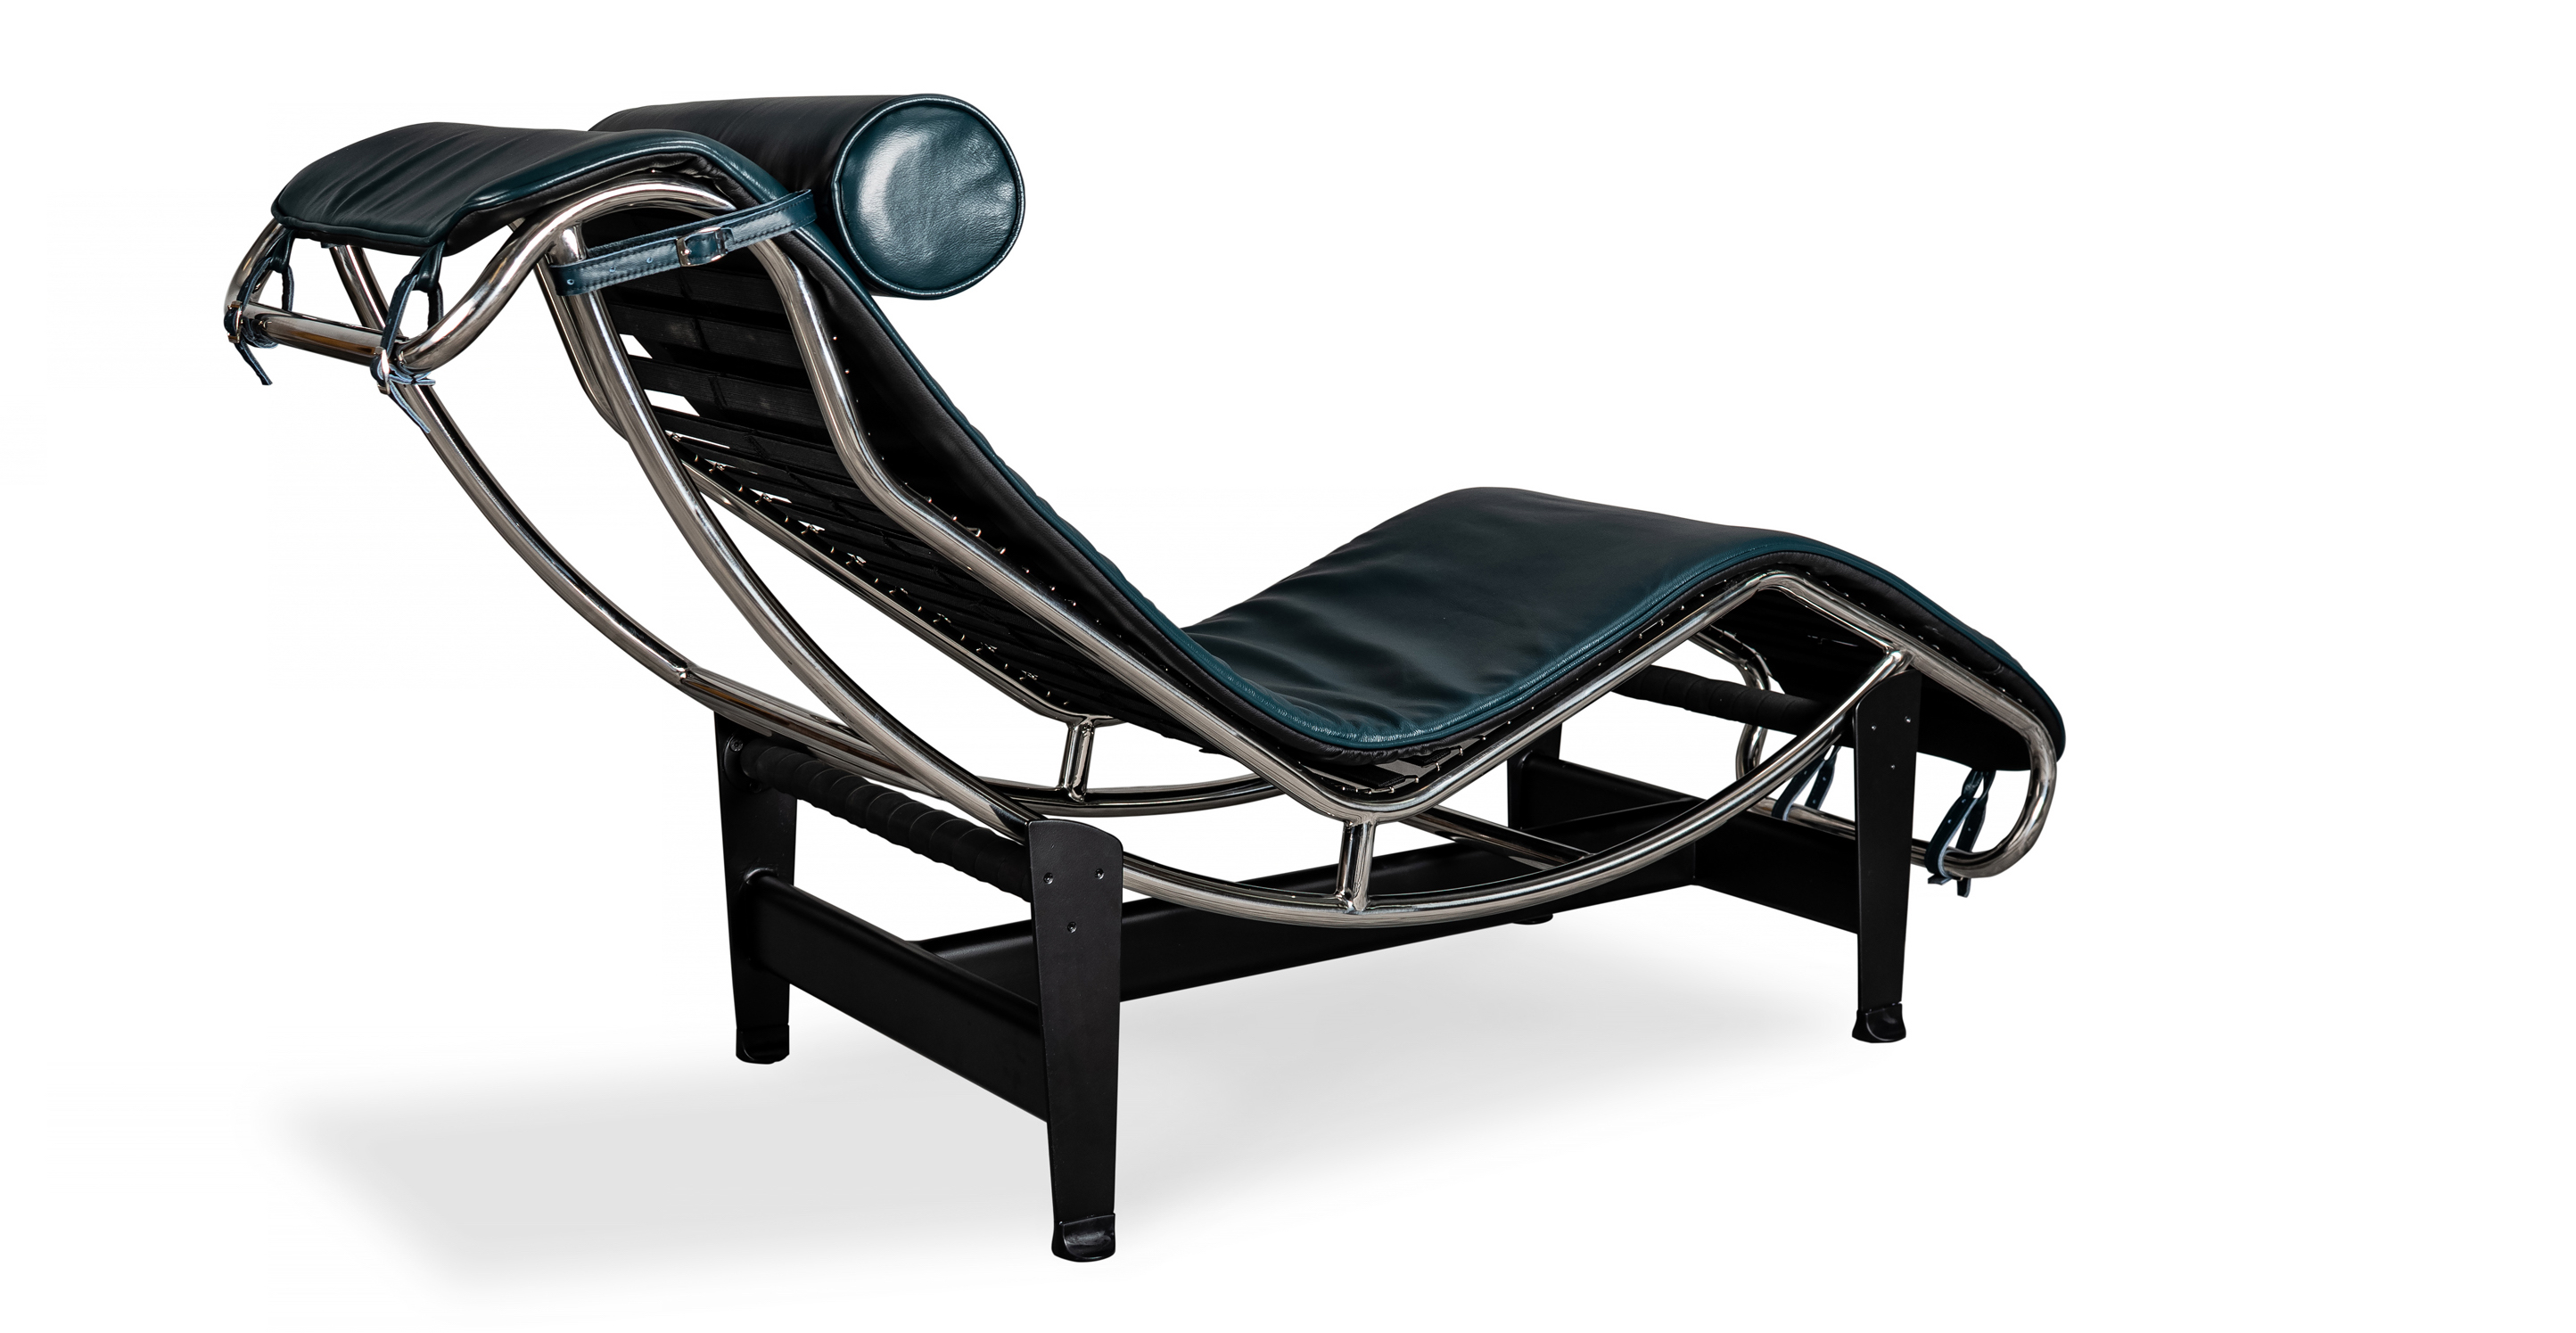 Gravity Chaise Lounge, Blue Aniline Leather